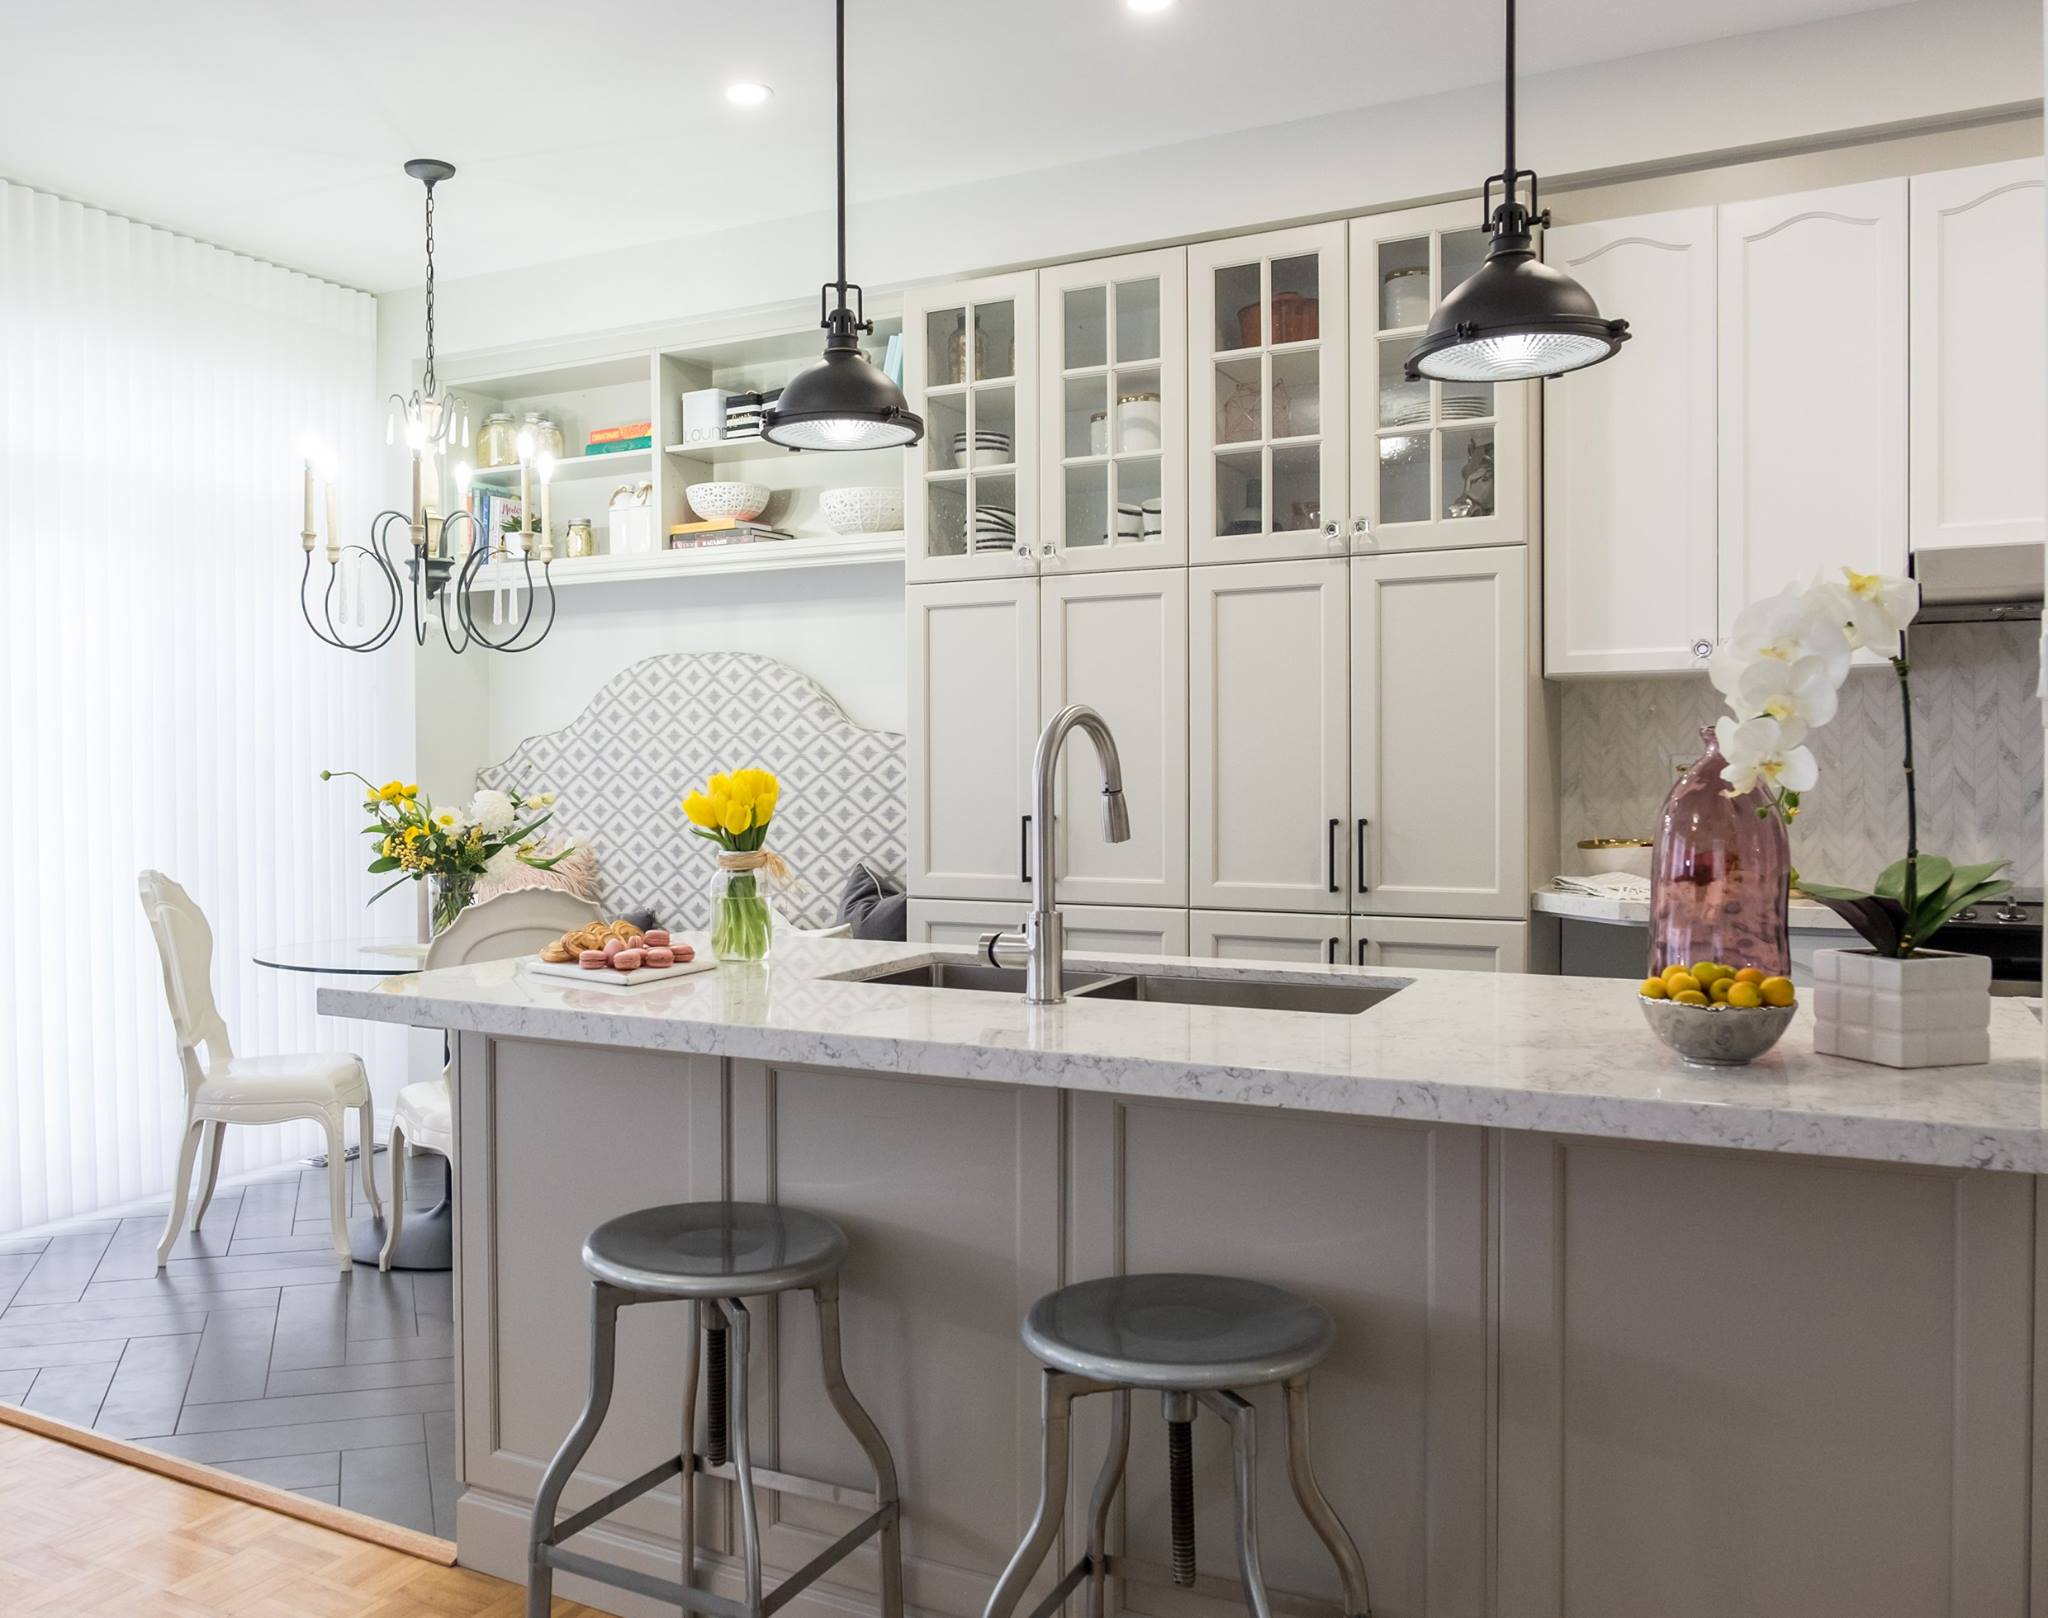 Merveilleux Jonathan And Tango Design Studio Decided To Modernized This Kitchen By  Adding A Rectangular Island, A Floor To Ceiling Pantry And A Built In  Banquette For ...